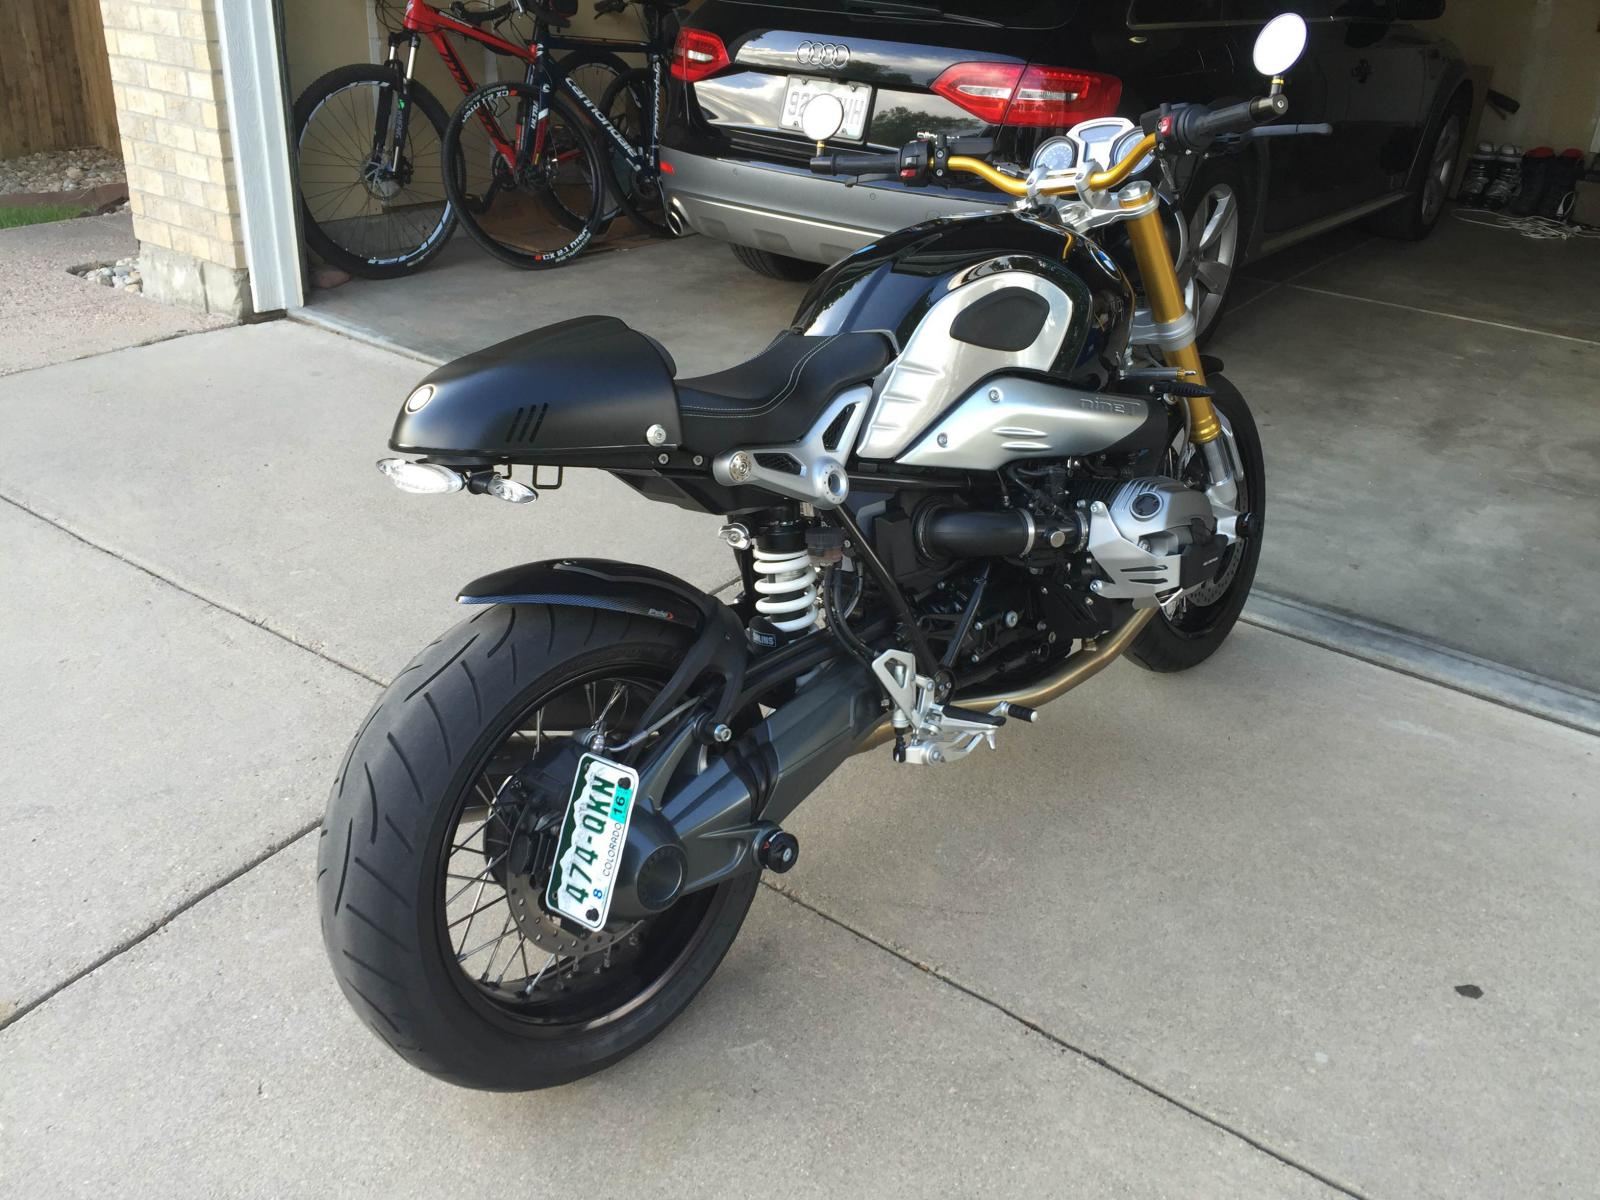 Bmw R Nine T For Sale >> SOLD: 2014 BMW R nine T lots of extras (Denver, CO) - BMW NineT Forum